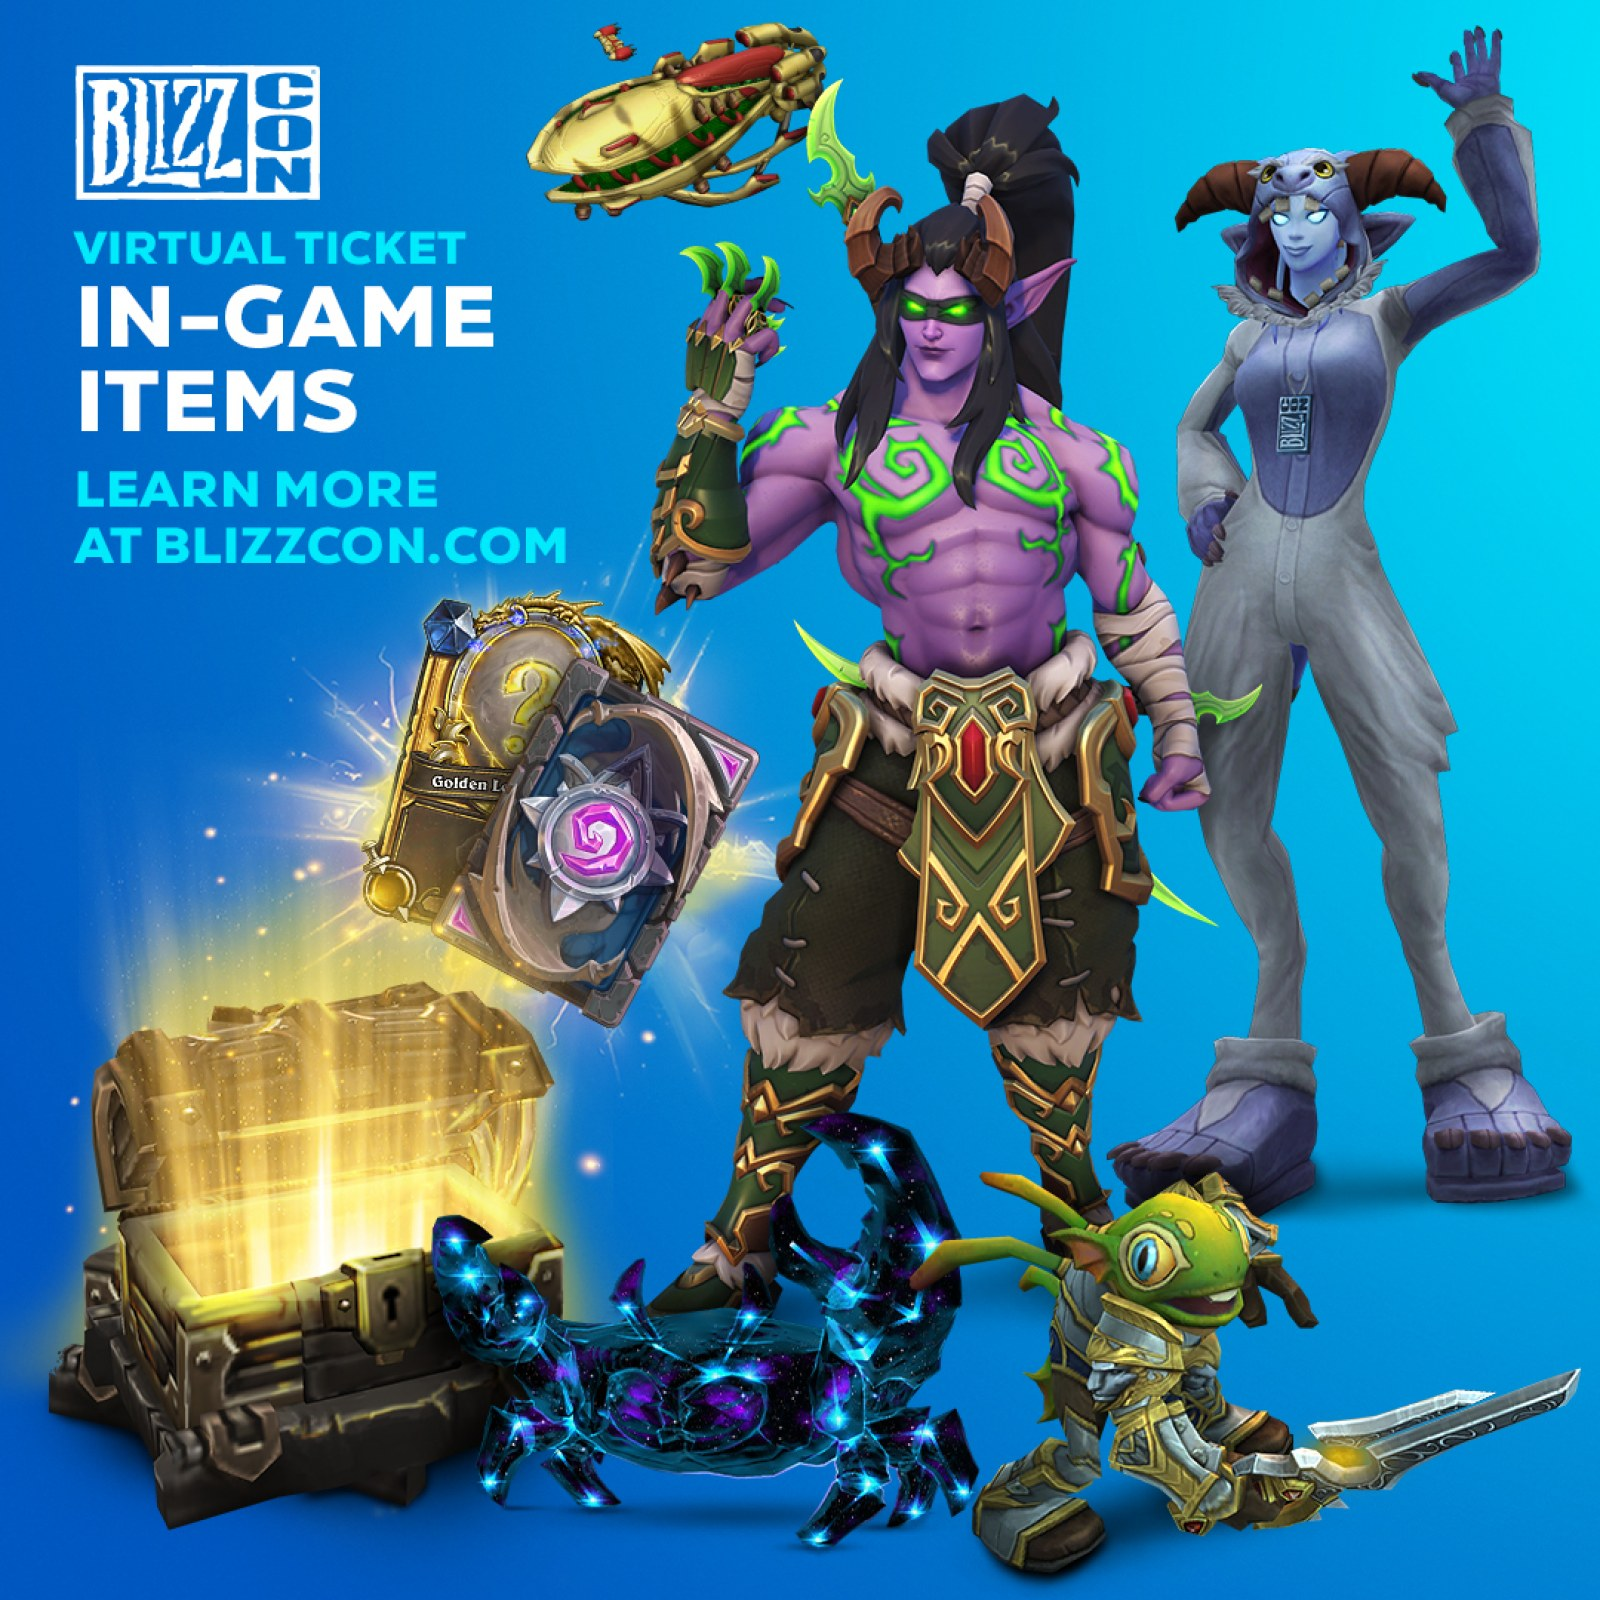 New Overwatch Skins 2020.Blizzcon 2019 Virtual Ticket Announced What Skins You Can